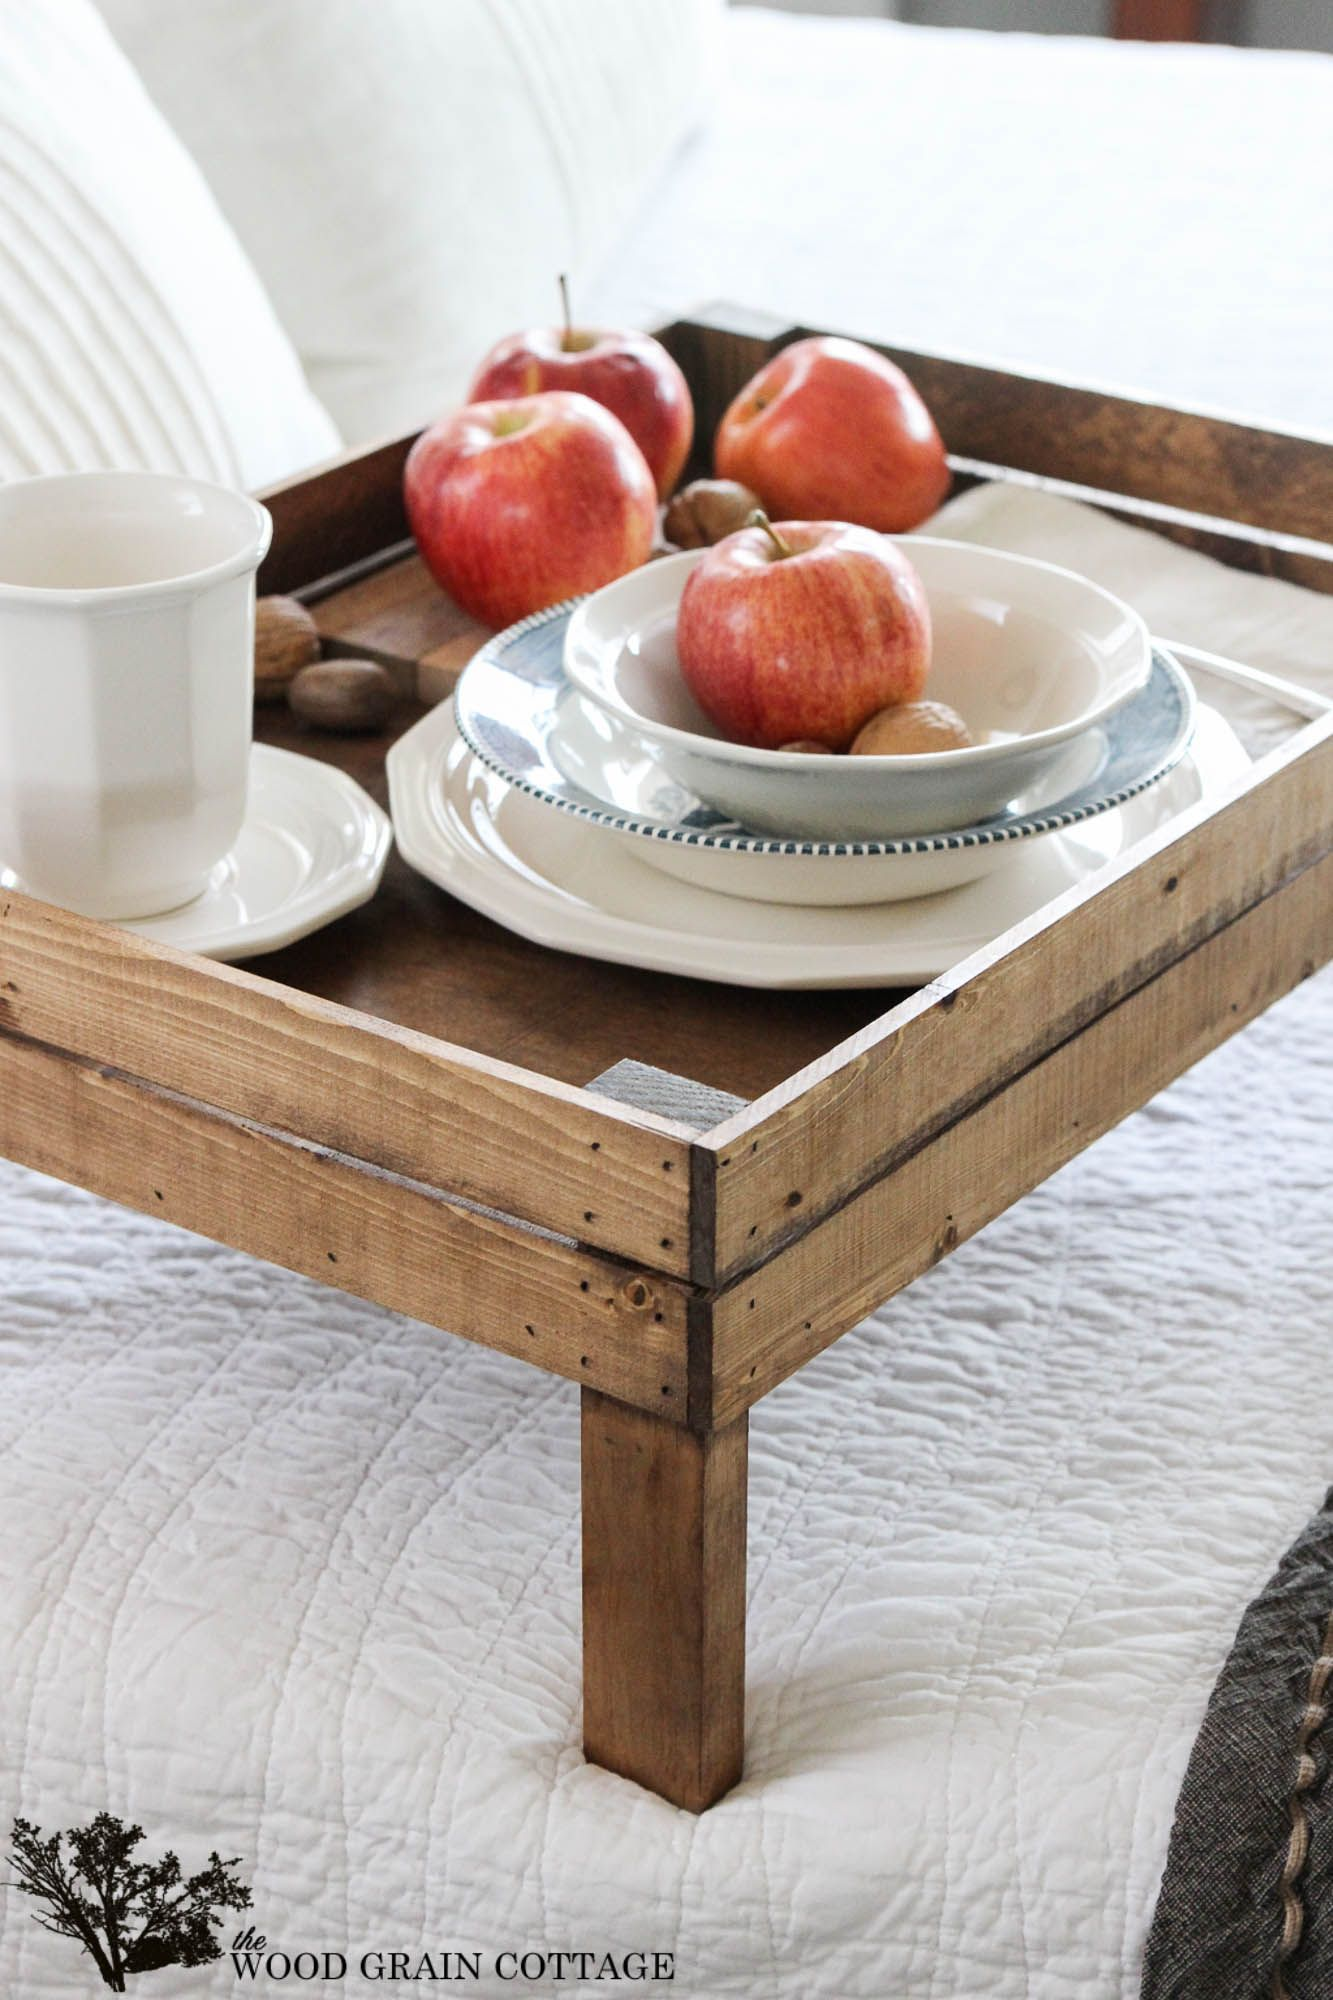 Breakfast Trays For Bed Magnificent Breakfast In Bed Tray  Bed Time Routine Bed Tray And Trays Design Inspiration